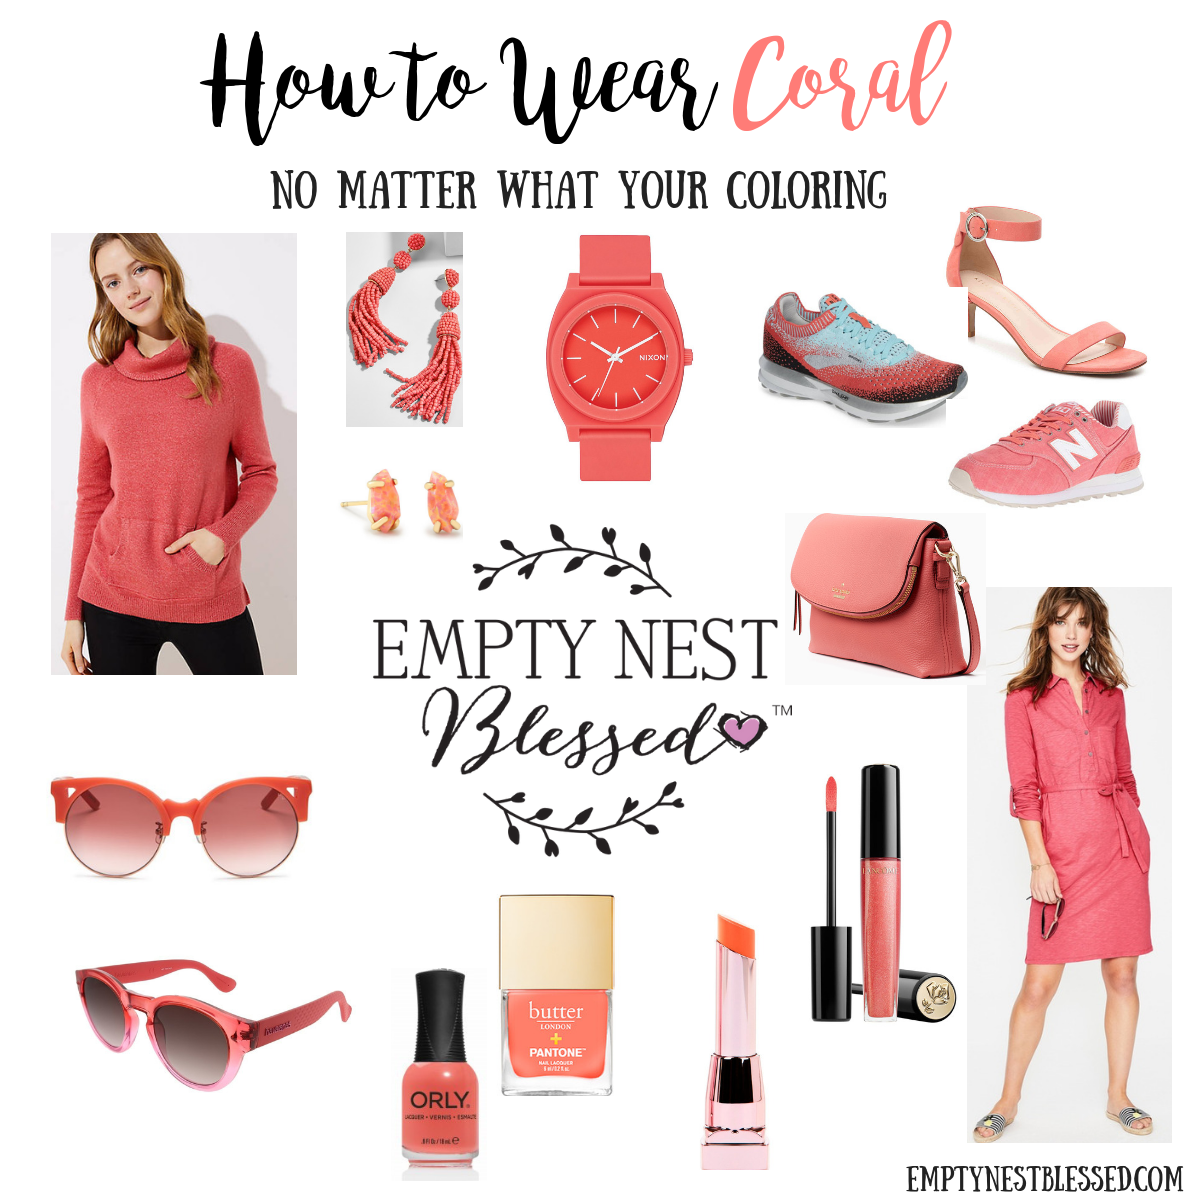 collage of fashion and beauty items in living coral